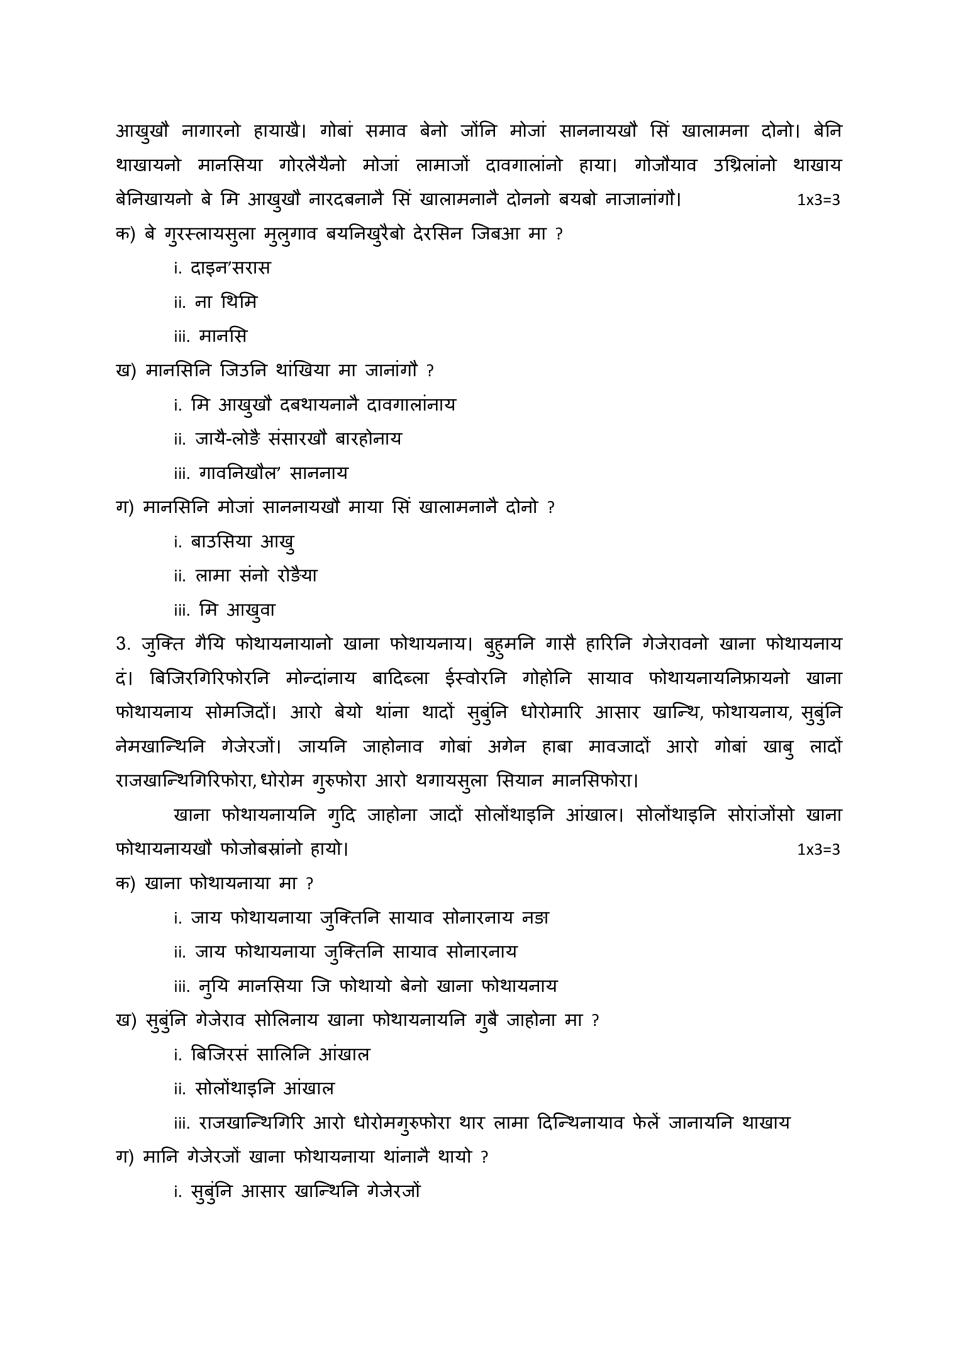 CBSE Sample Papers 2020 for Class 12 – Bodo